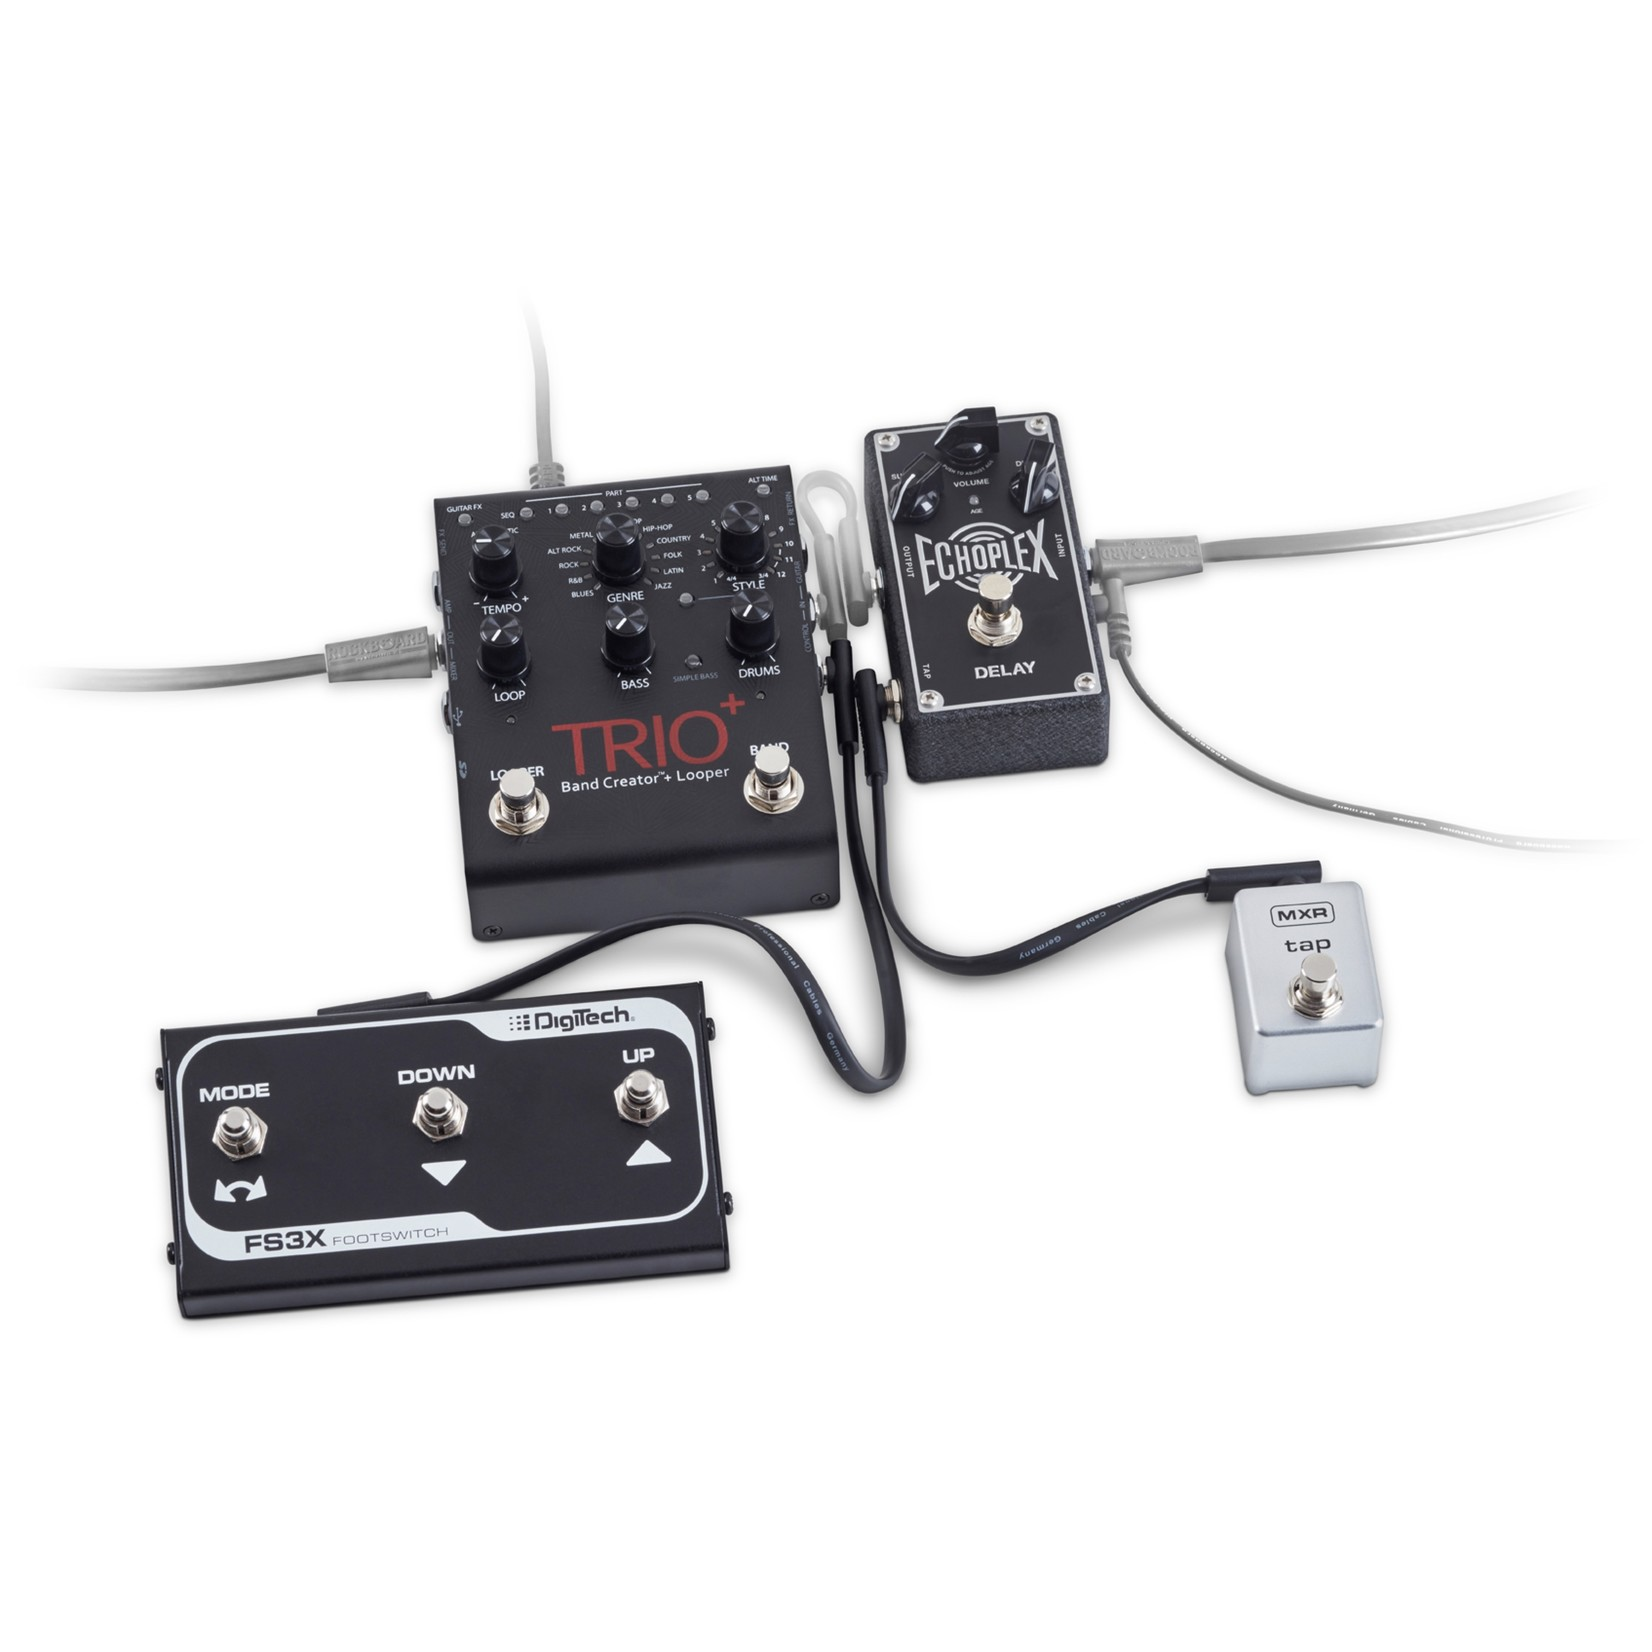 Rockboard Rockboard Flat Patch TRS Cable, 120 cm / 3.93 ft, Black, low profile, for switch & expression pedals